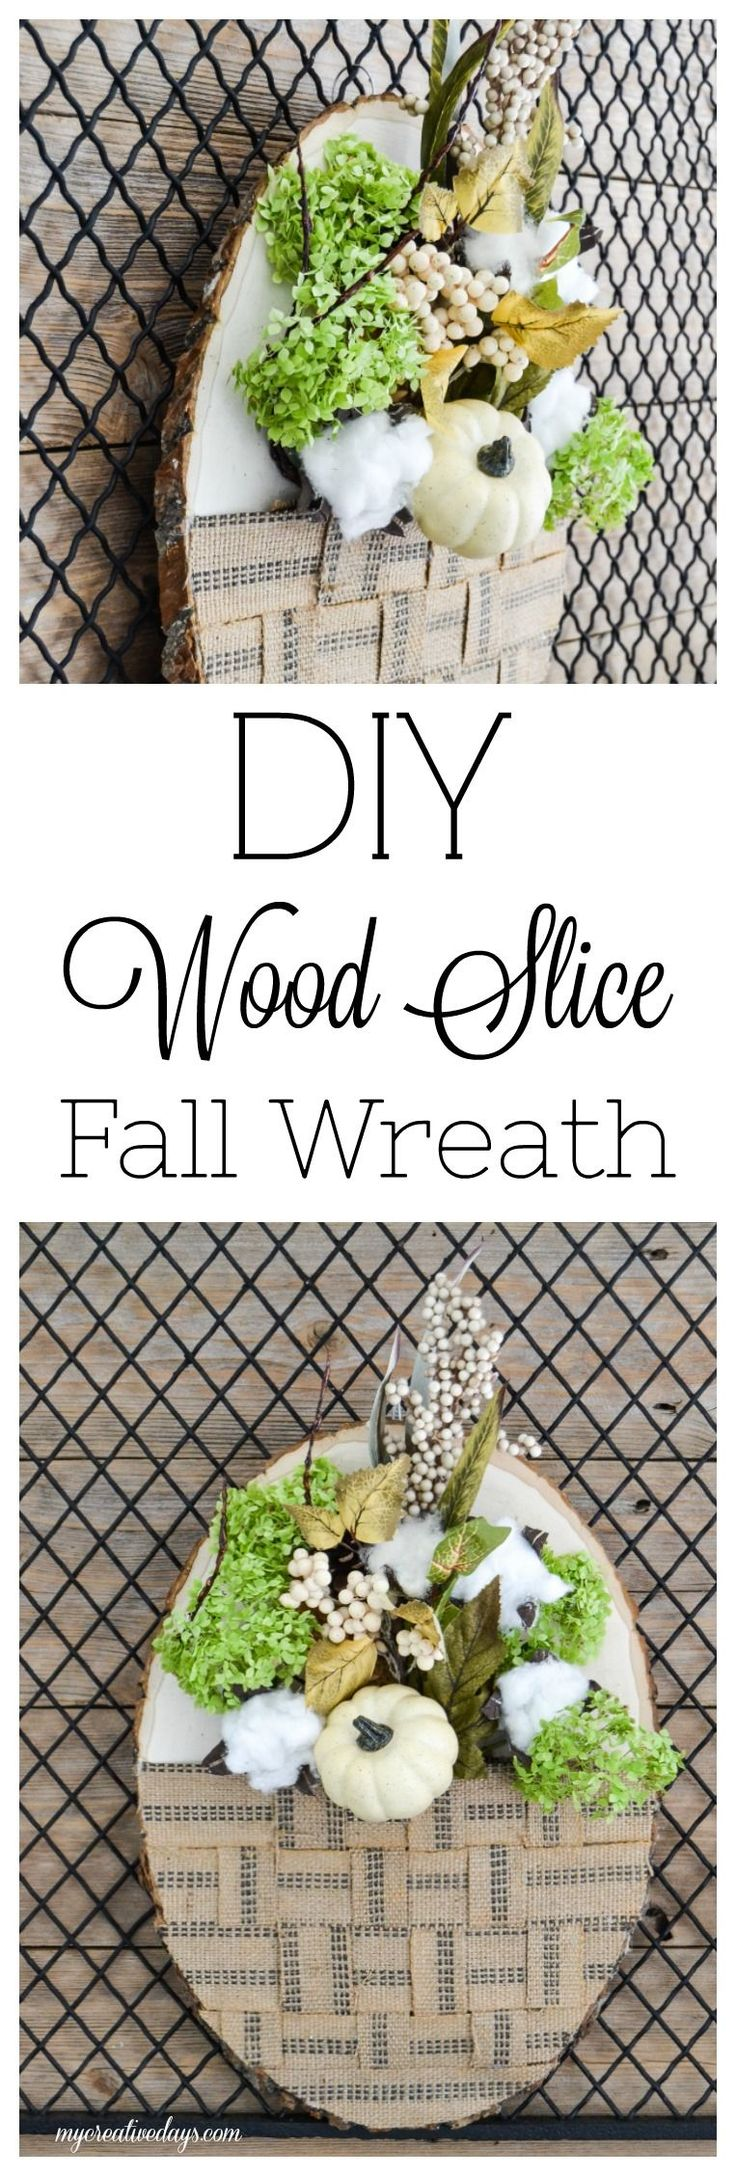 DIY Wood Slice Fall Wreath - Looking for a non-traditional wreath to welcome the fall season? This DIY Wood Slice Fall Wreath is just that. Easy, unique and perfect for fall!